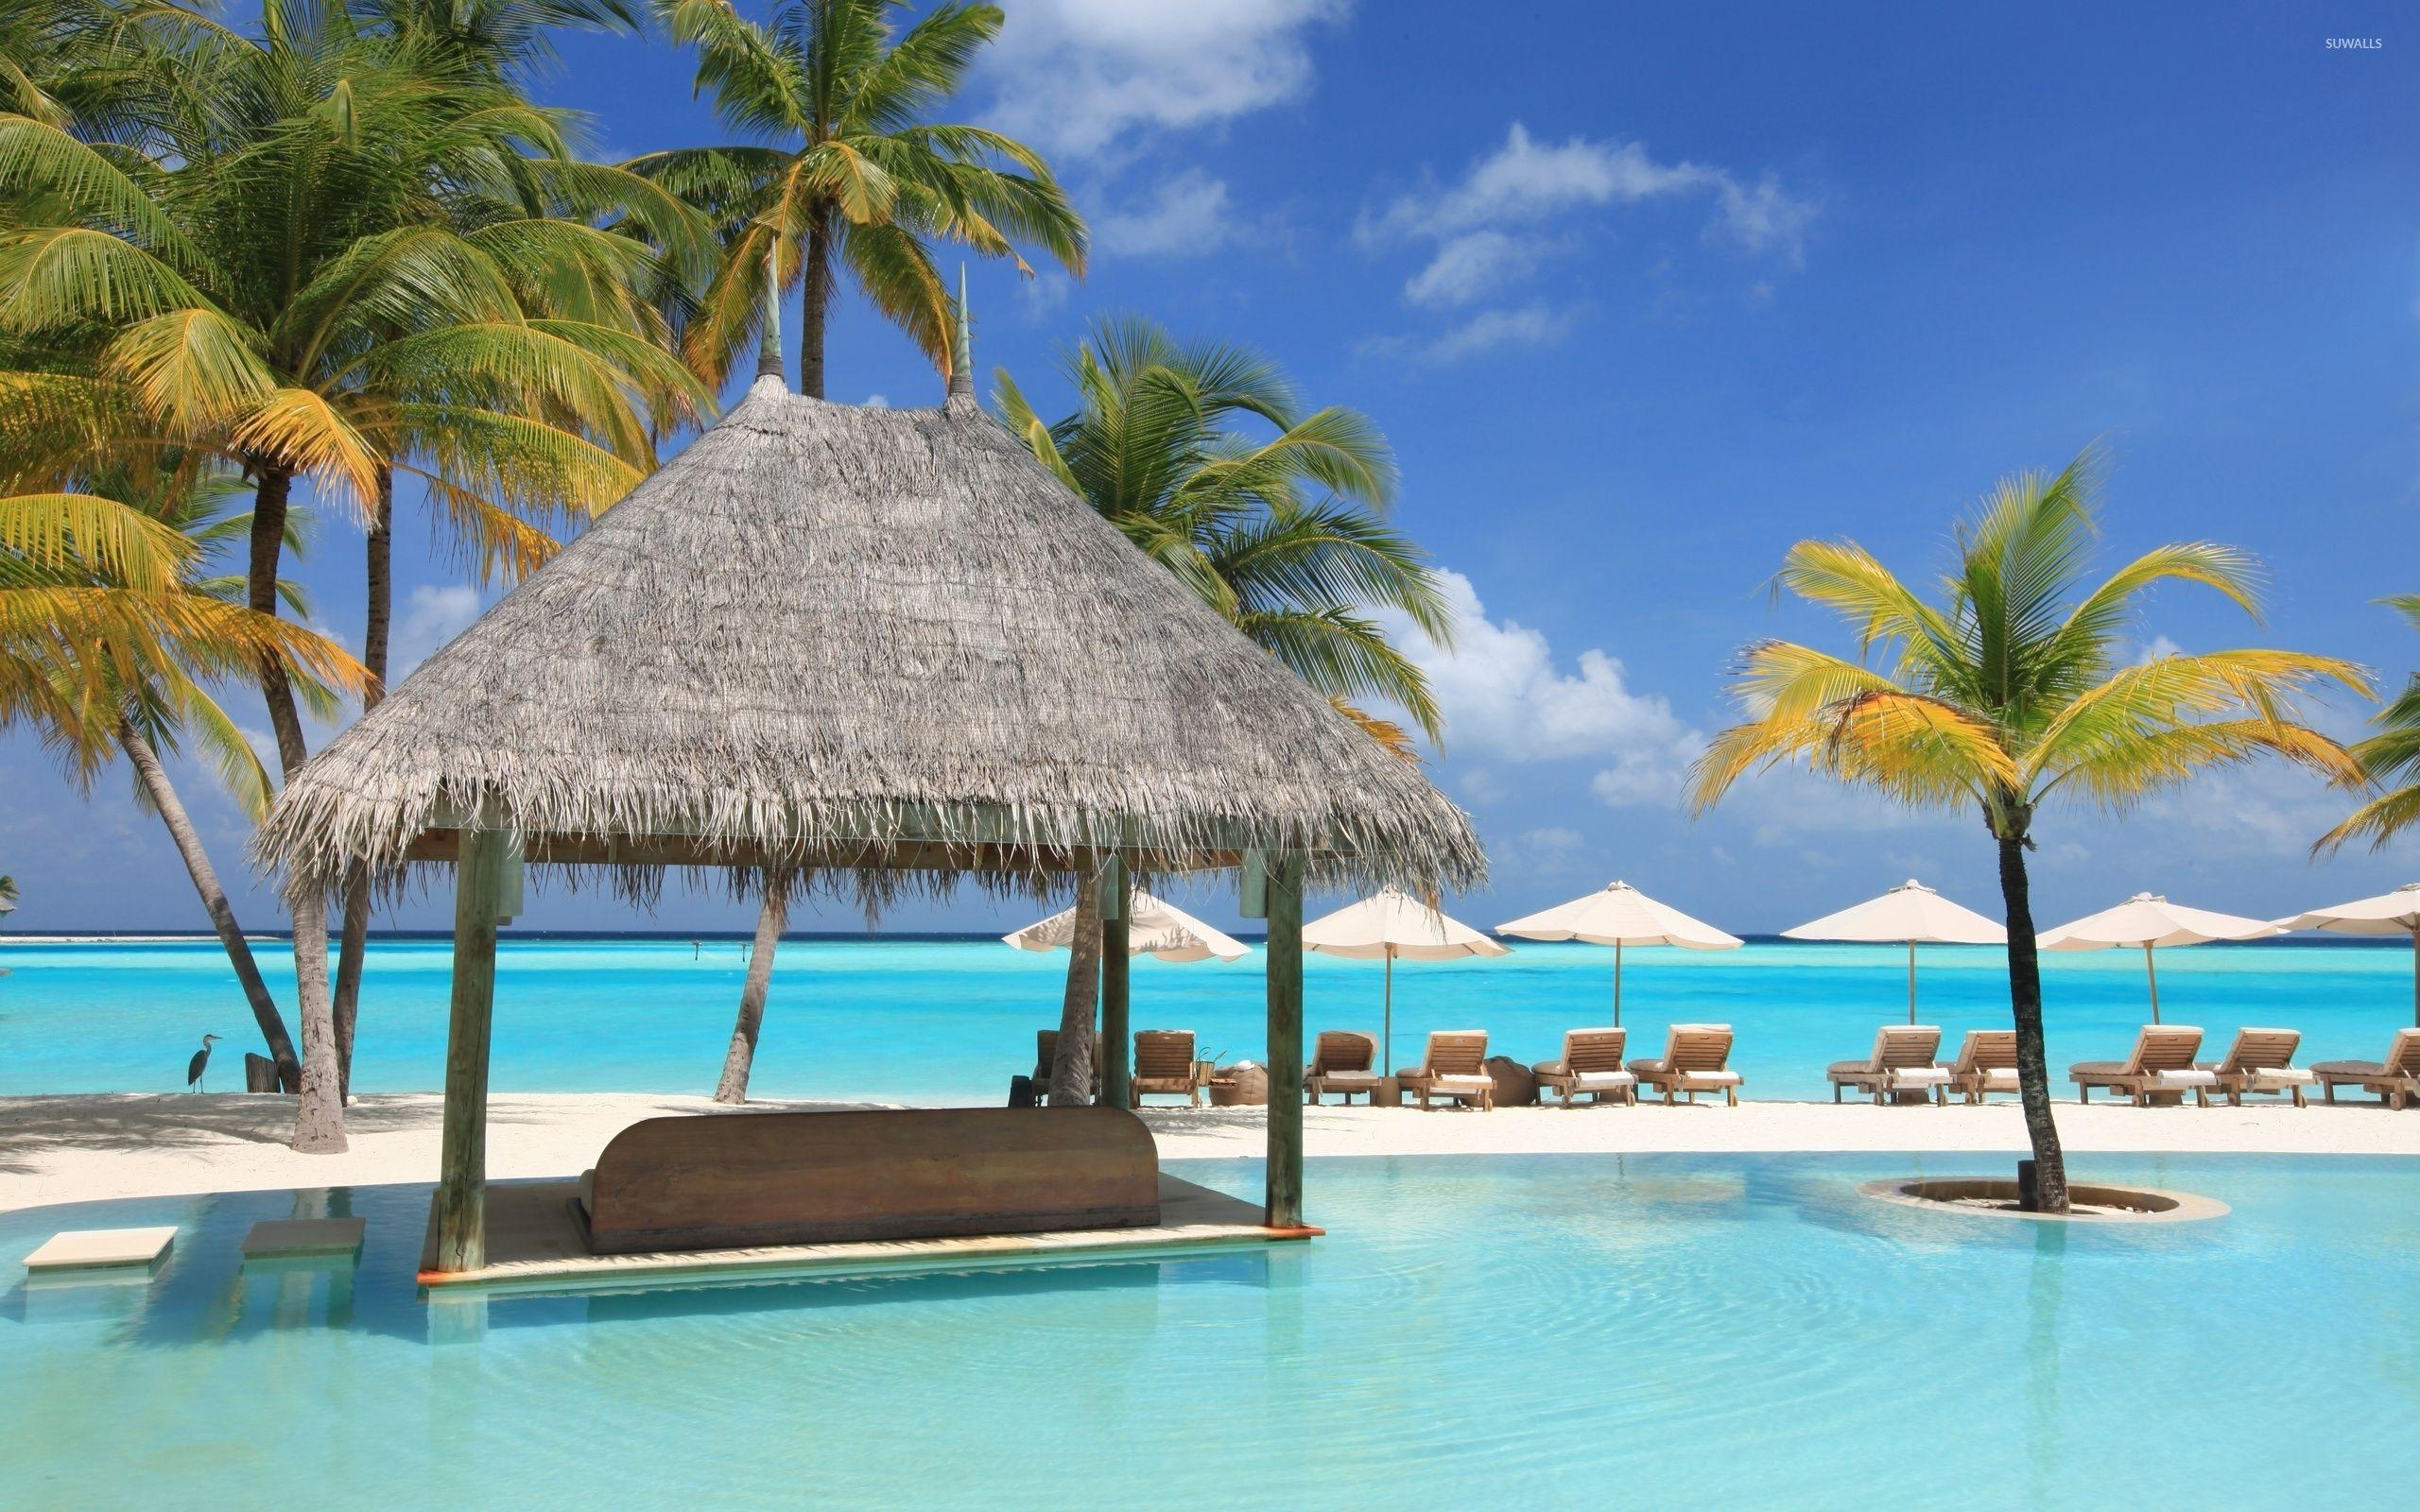 Beautiful resort in Maldives wallpapers